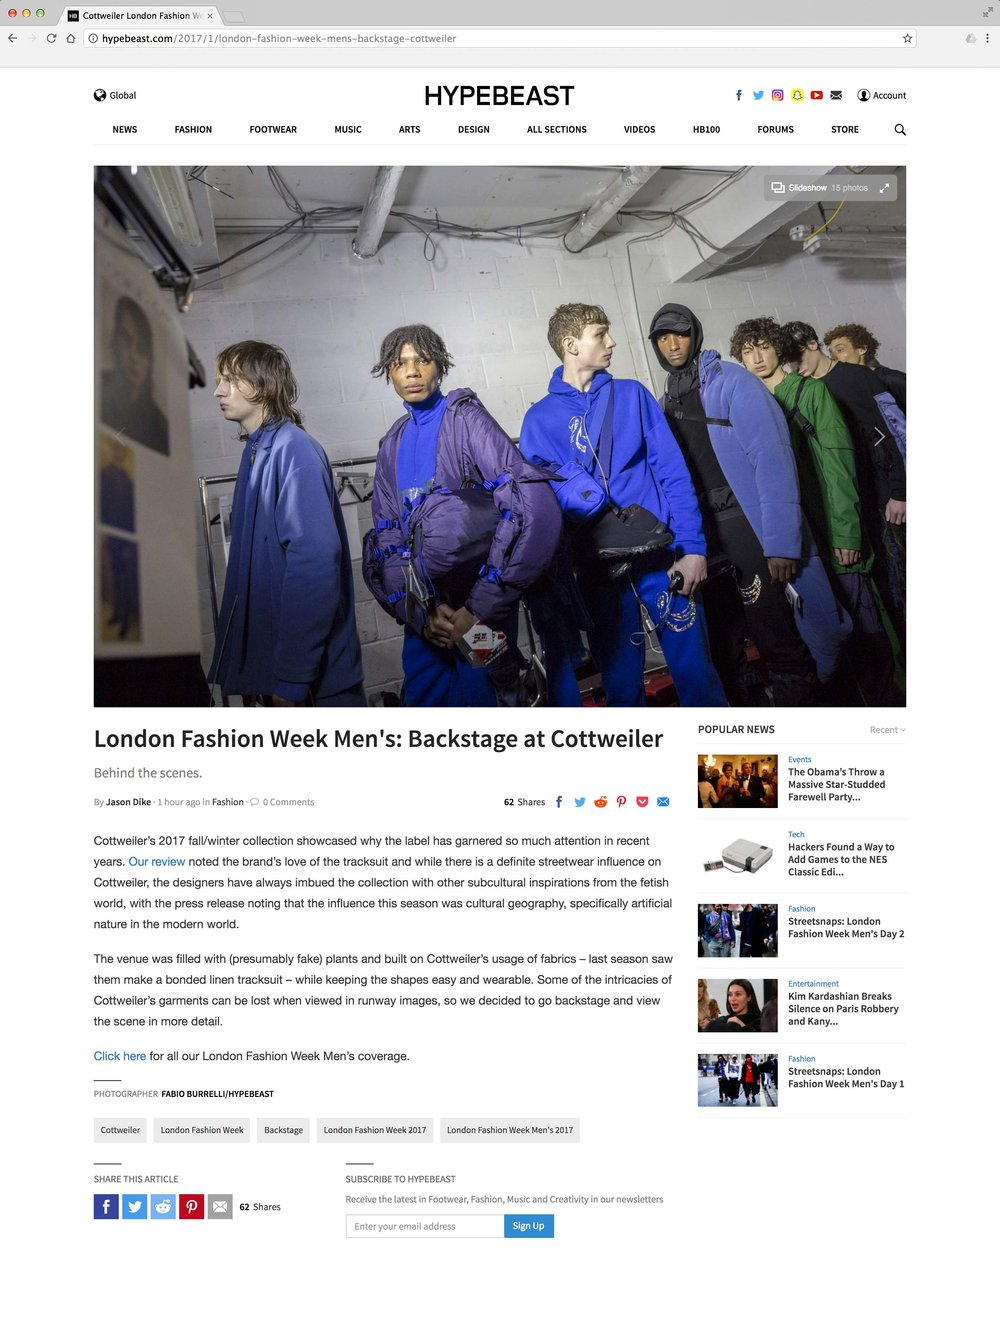 London Fashion Week Men's: Backstage at Cottweiler Fall-Winter 2017   http://hypebeast.com/2017/1/london-fashion-week-mens-backstage-cottweiler